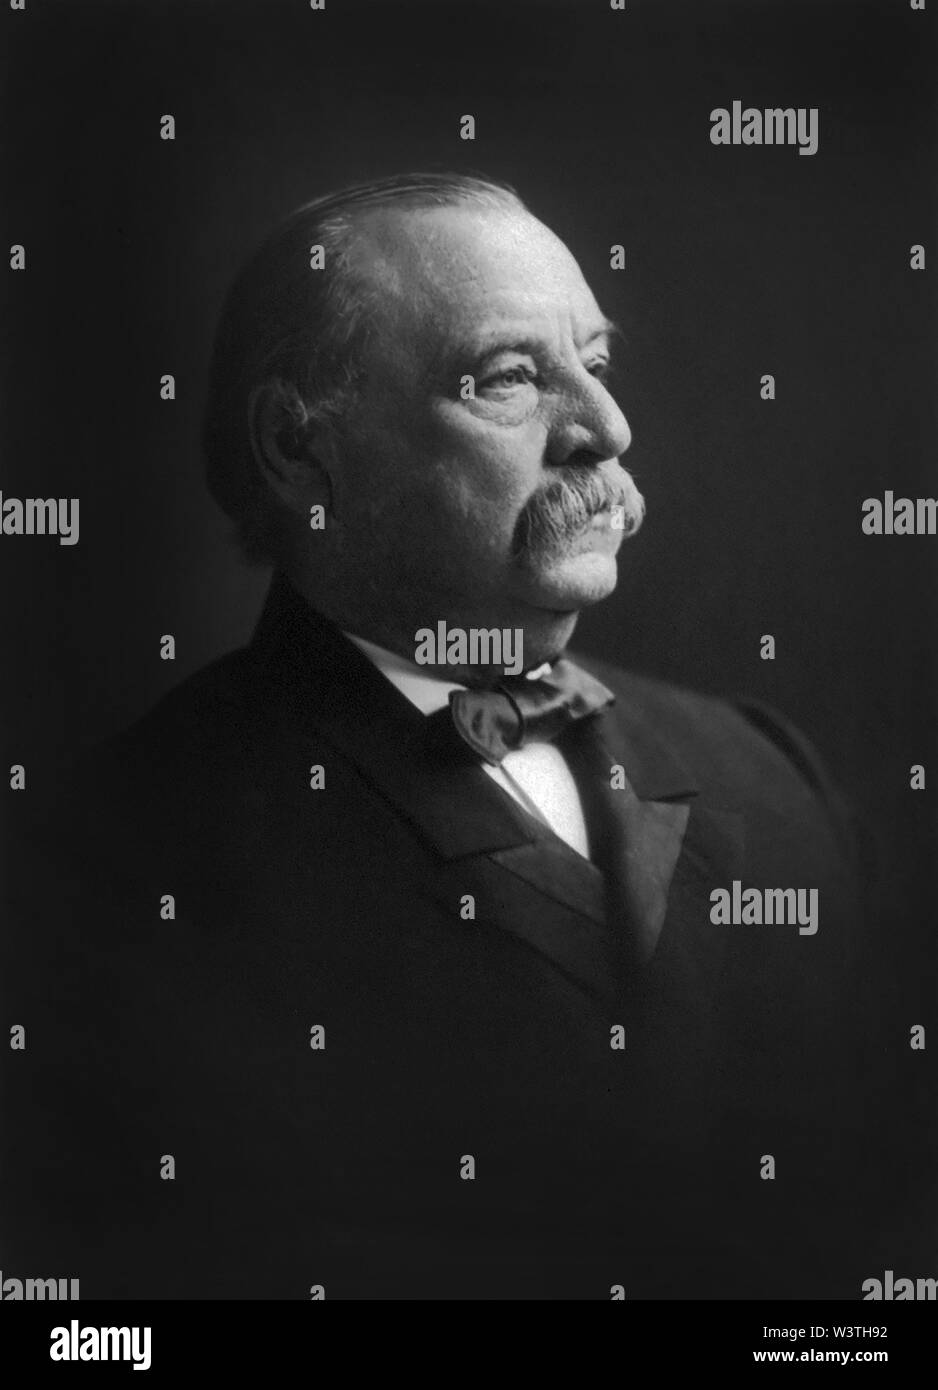 Grover Cleveland (1837-1908), 22nd and 24th President of the United States 1885–89 and 1893–97, Head and Shoulders Portrait, Photograph by F. Gutekunst, 1903 - Stock Image